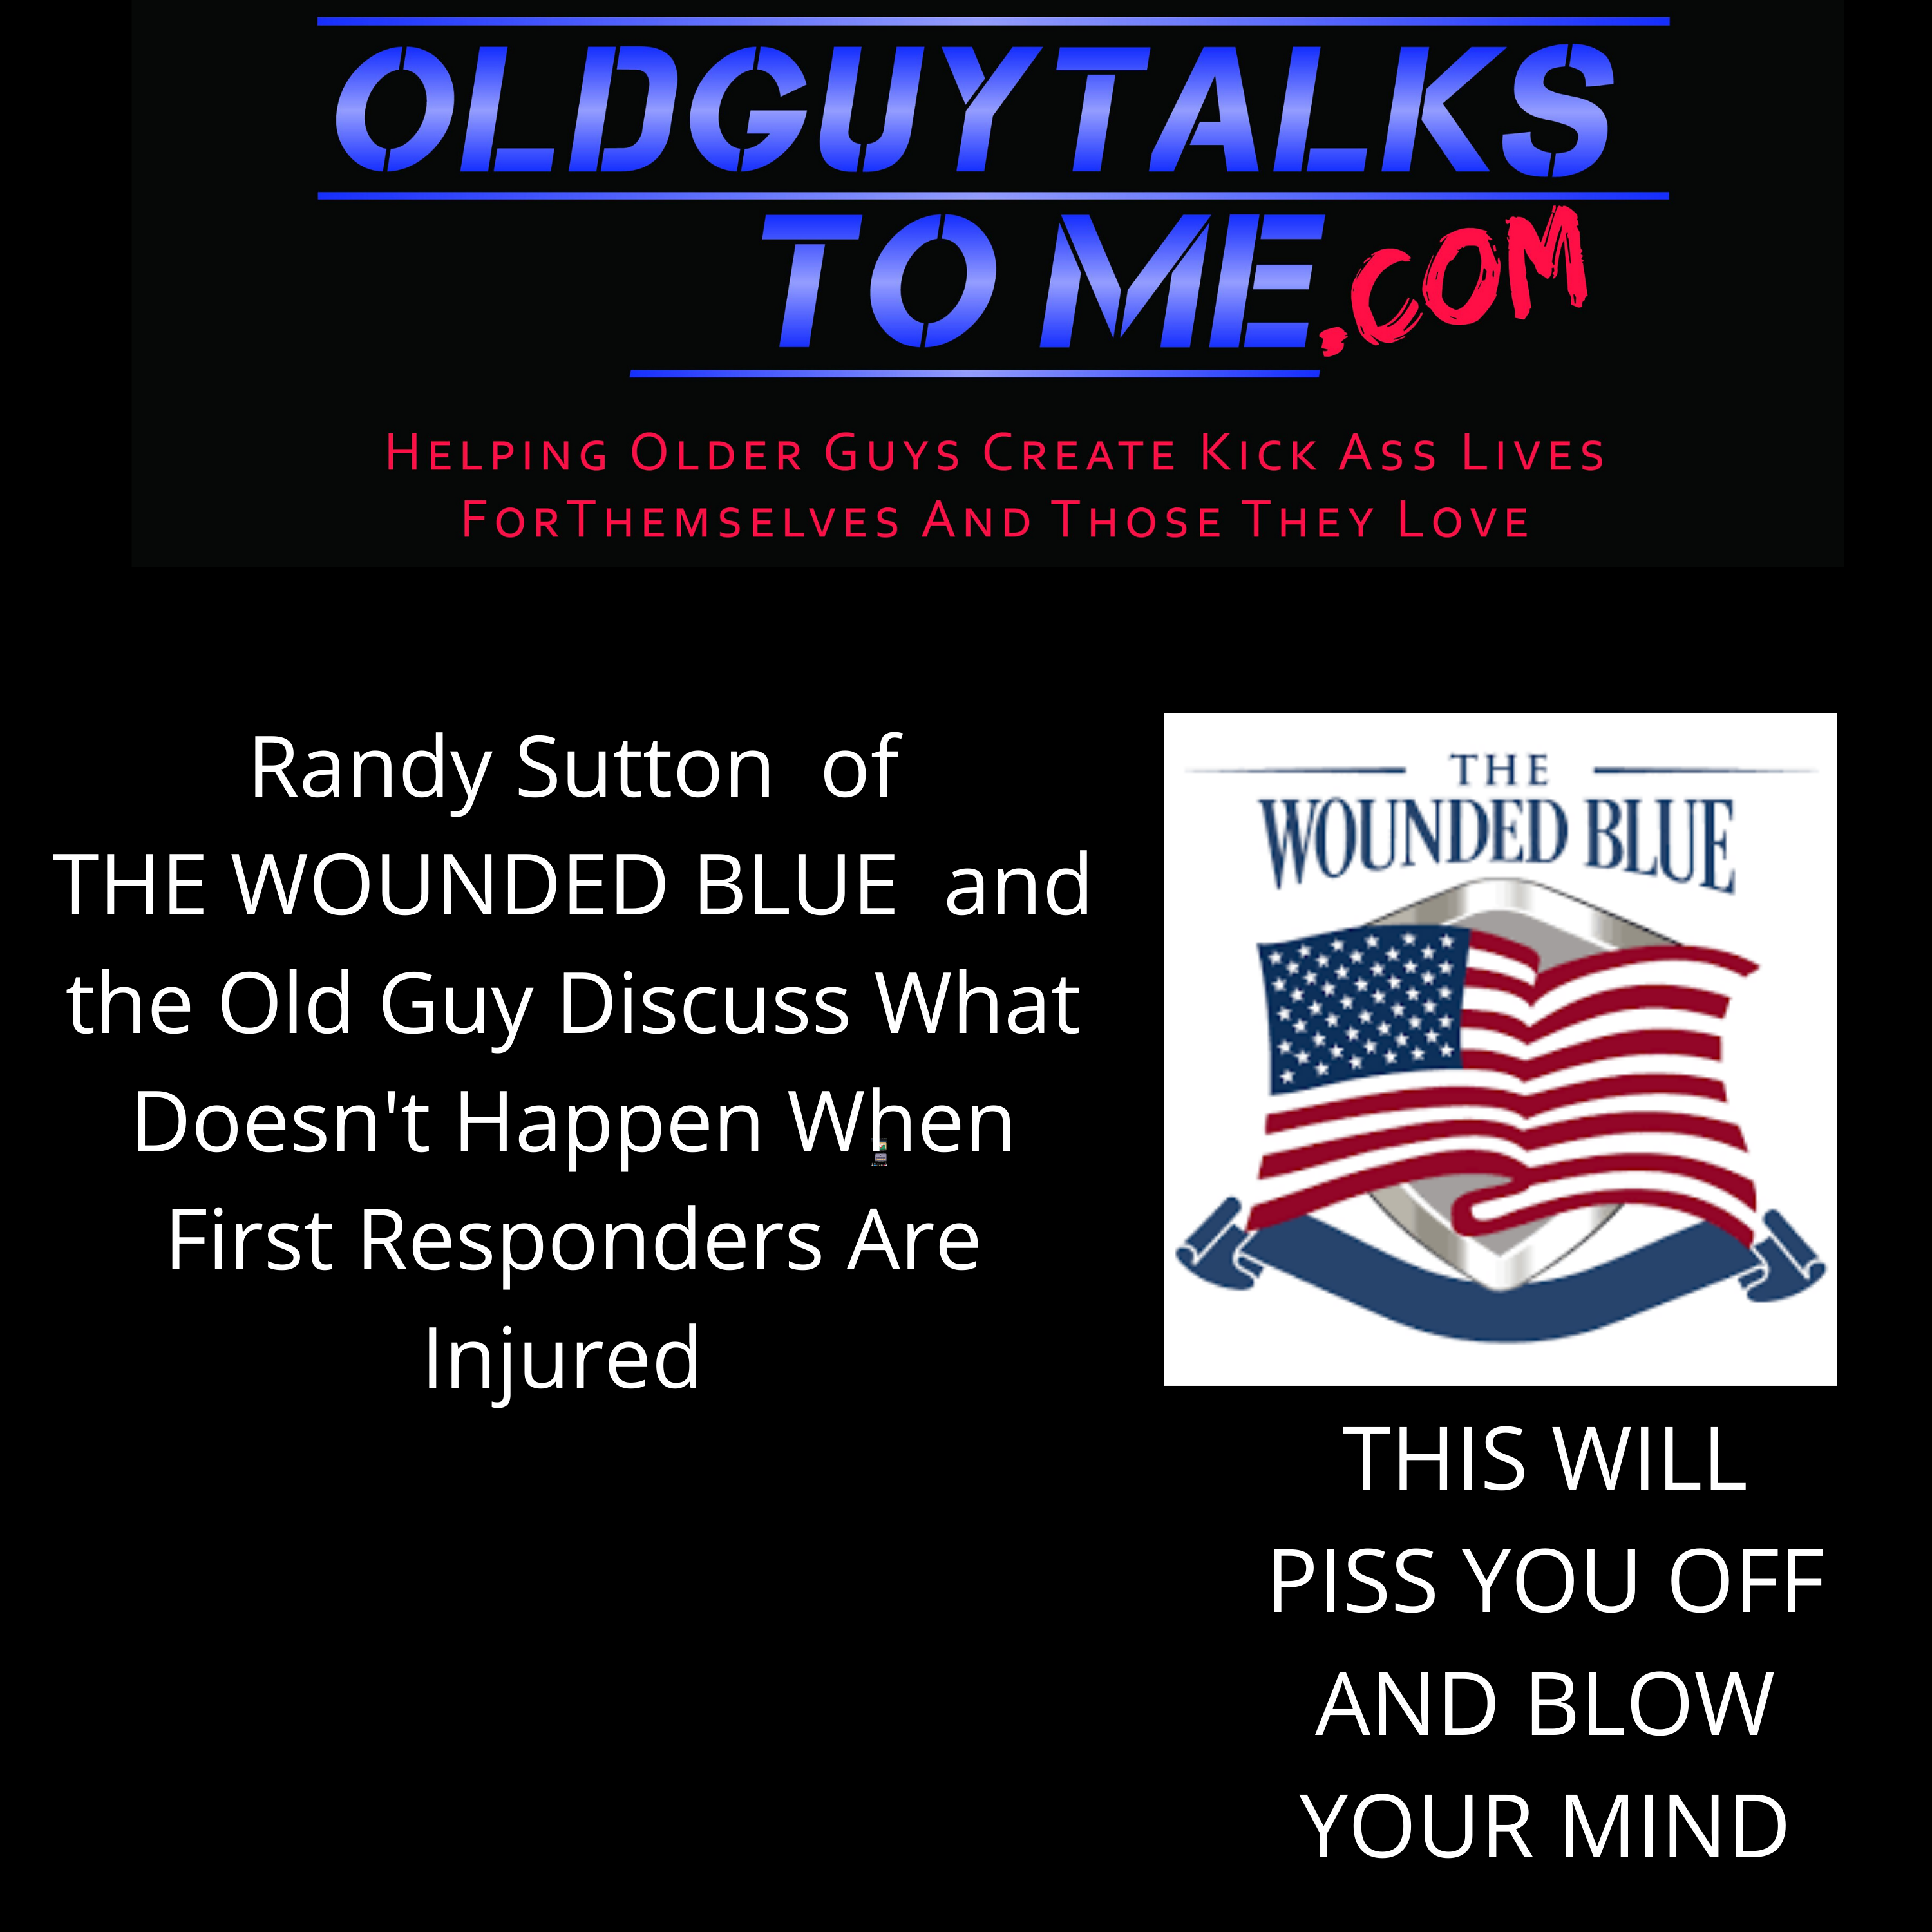 OldGuyTalksToMe - THE WOUNDED BLUE